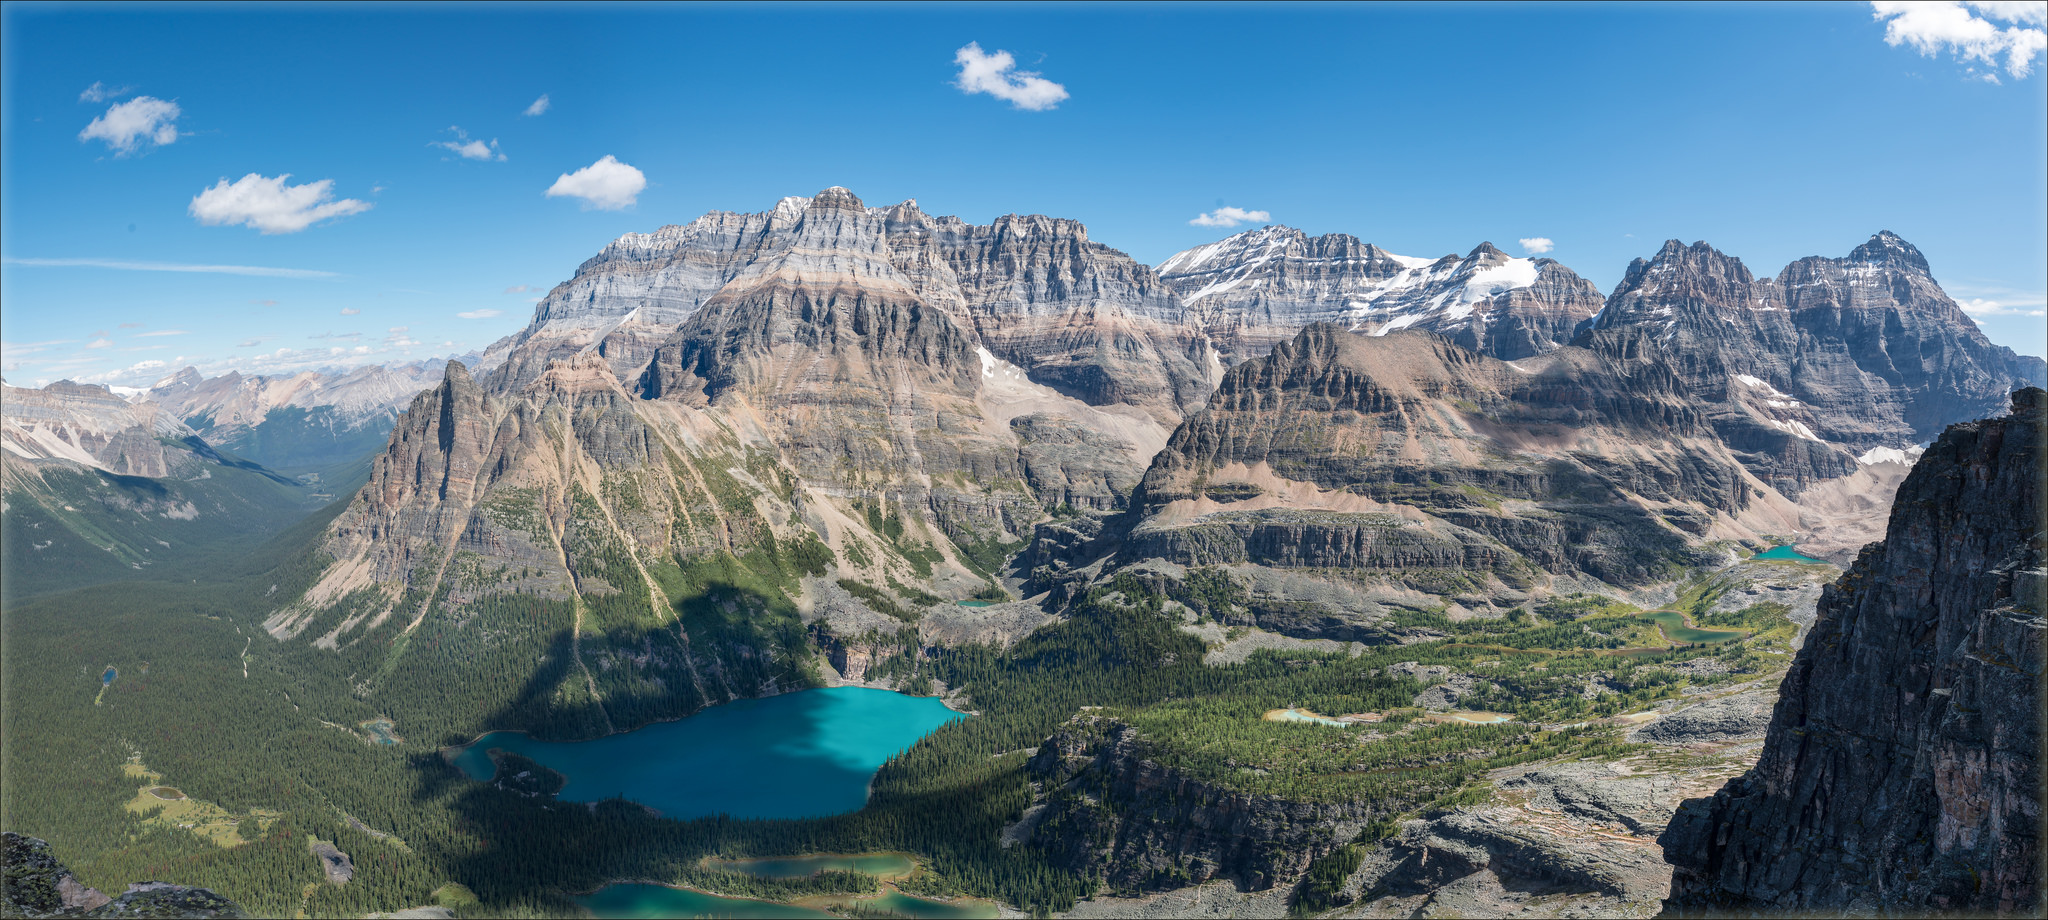 Lake O'Hara from Mt. Schaffer, MLP, 2016